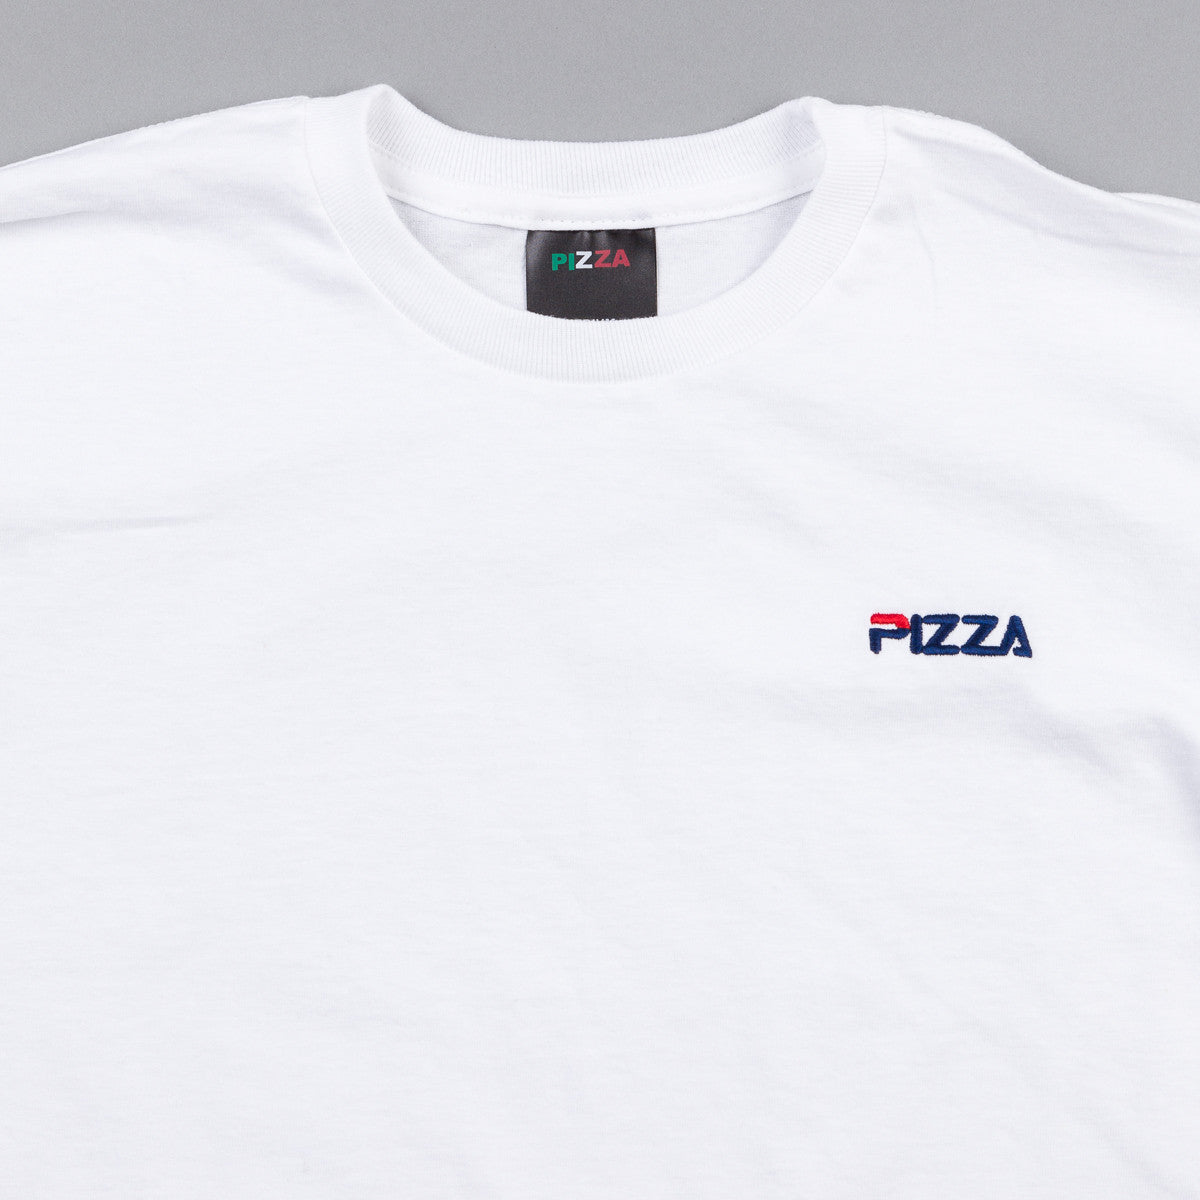 Pizza Skateboards Fizza T-Shirt - White